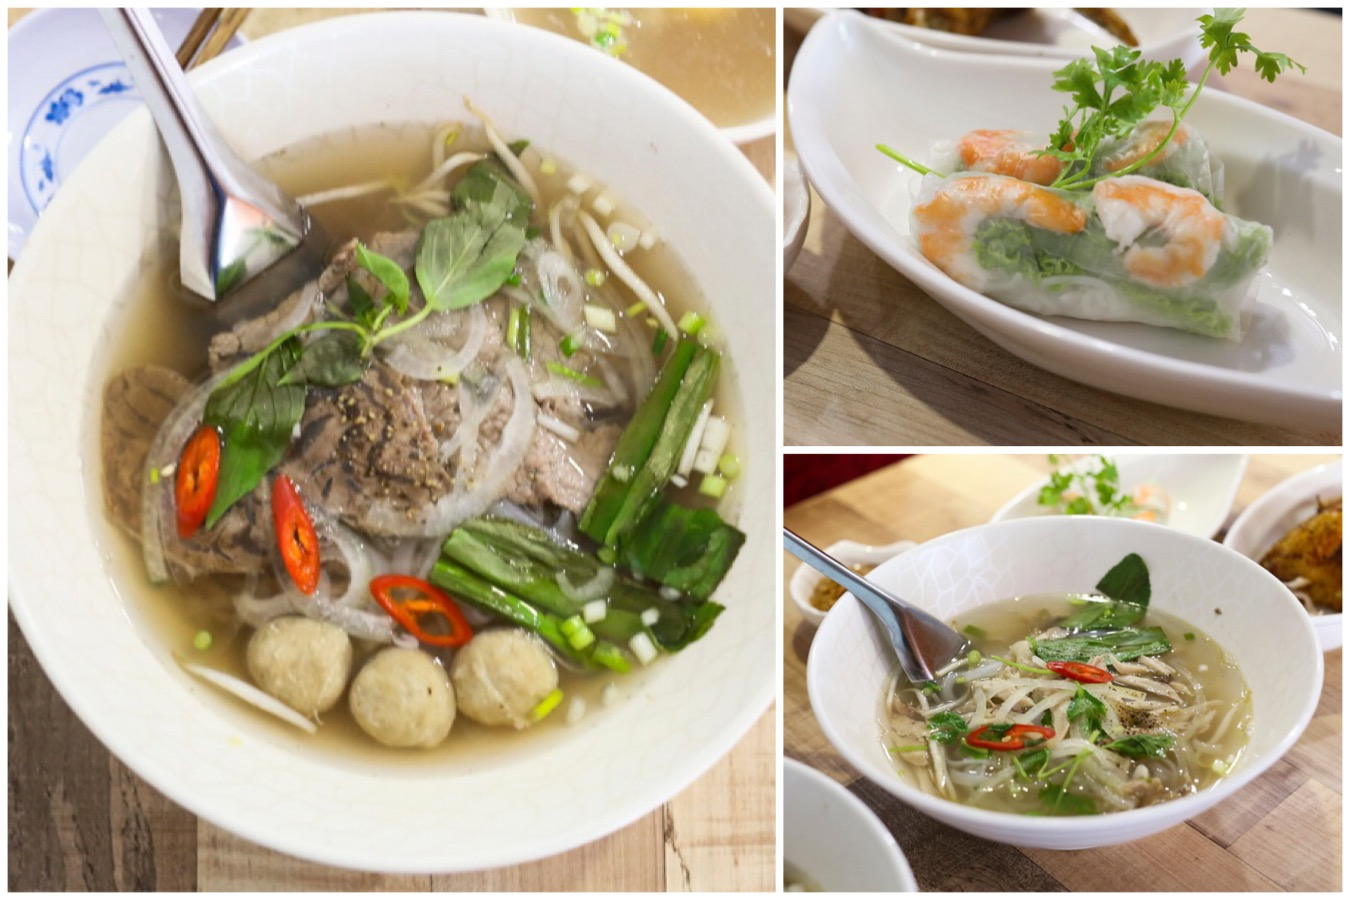 Pho.Vn - Flavourful Pho Broth With No MSG Added, A Gem For CBD Workers